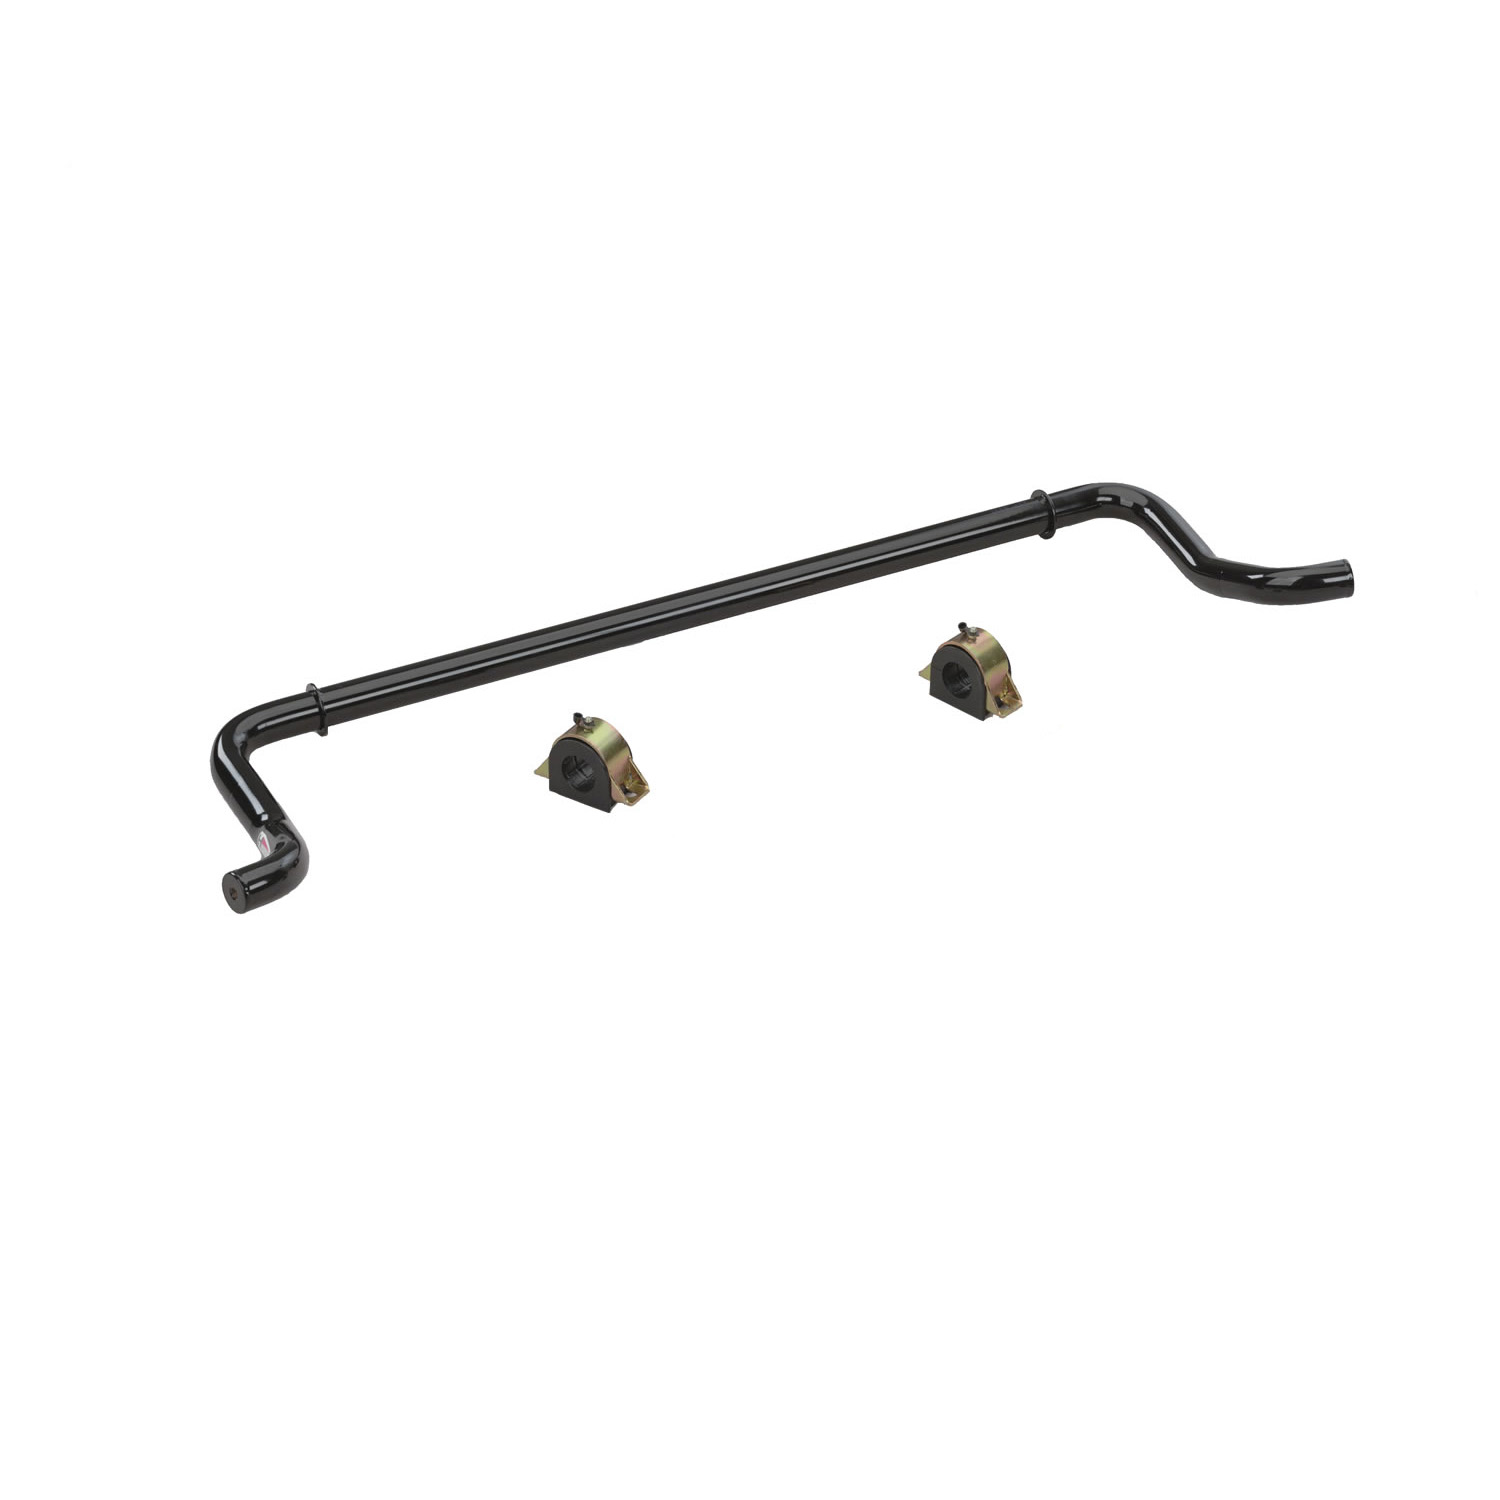 2001-04 Audi Allroad Sport Front Sway Bar from Hotchkis Sport Suspension